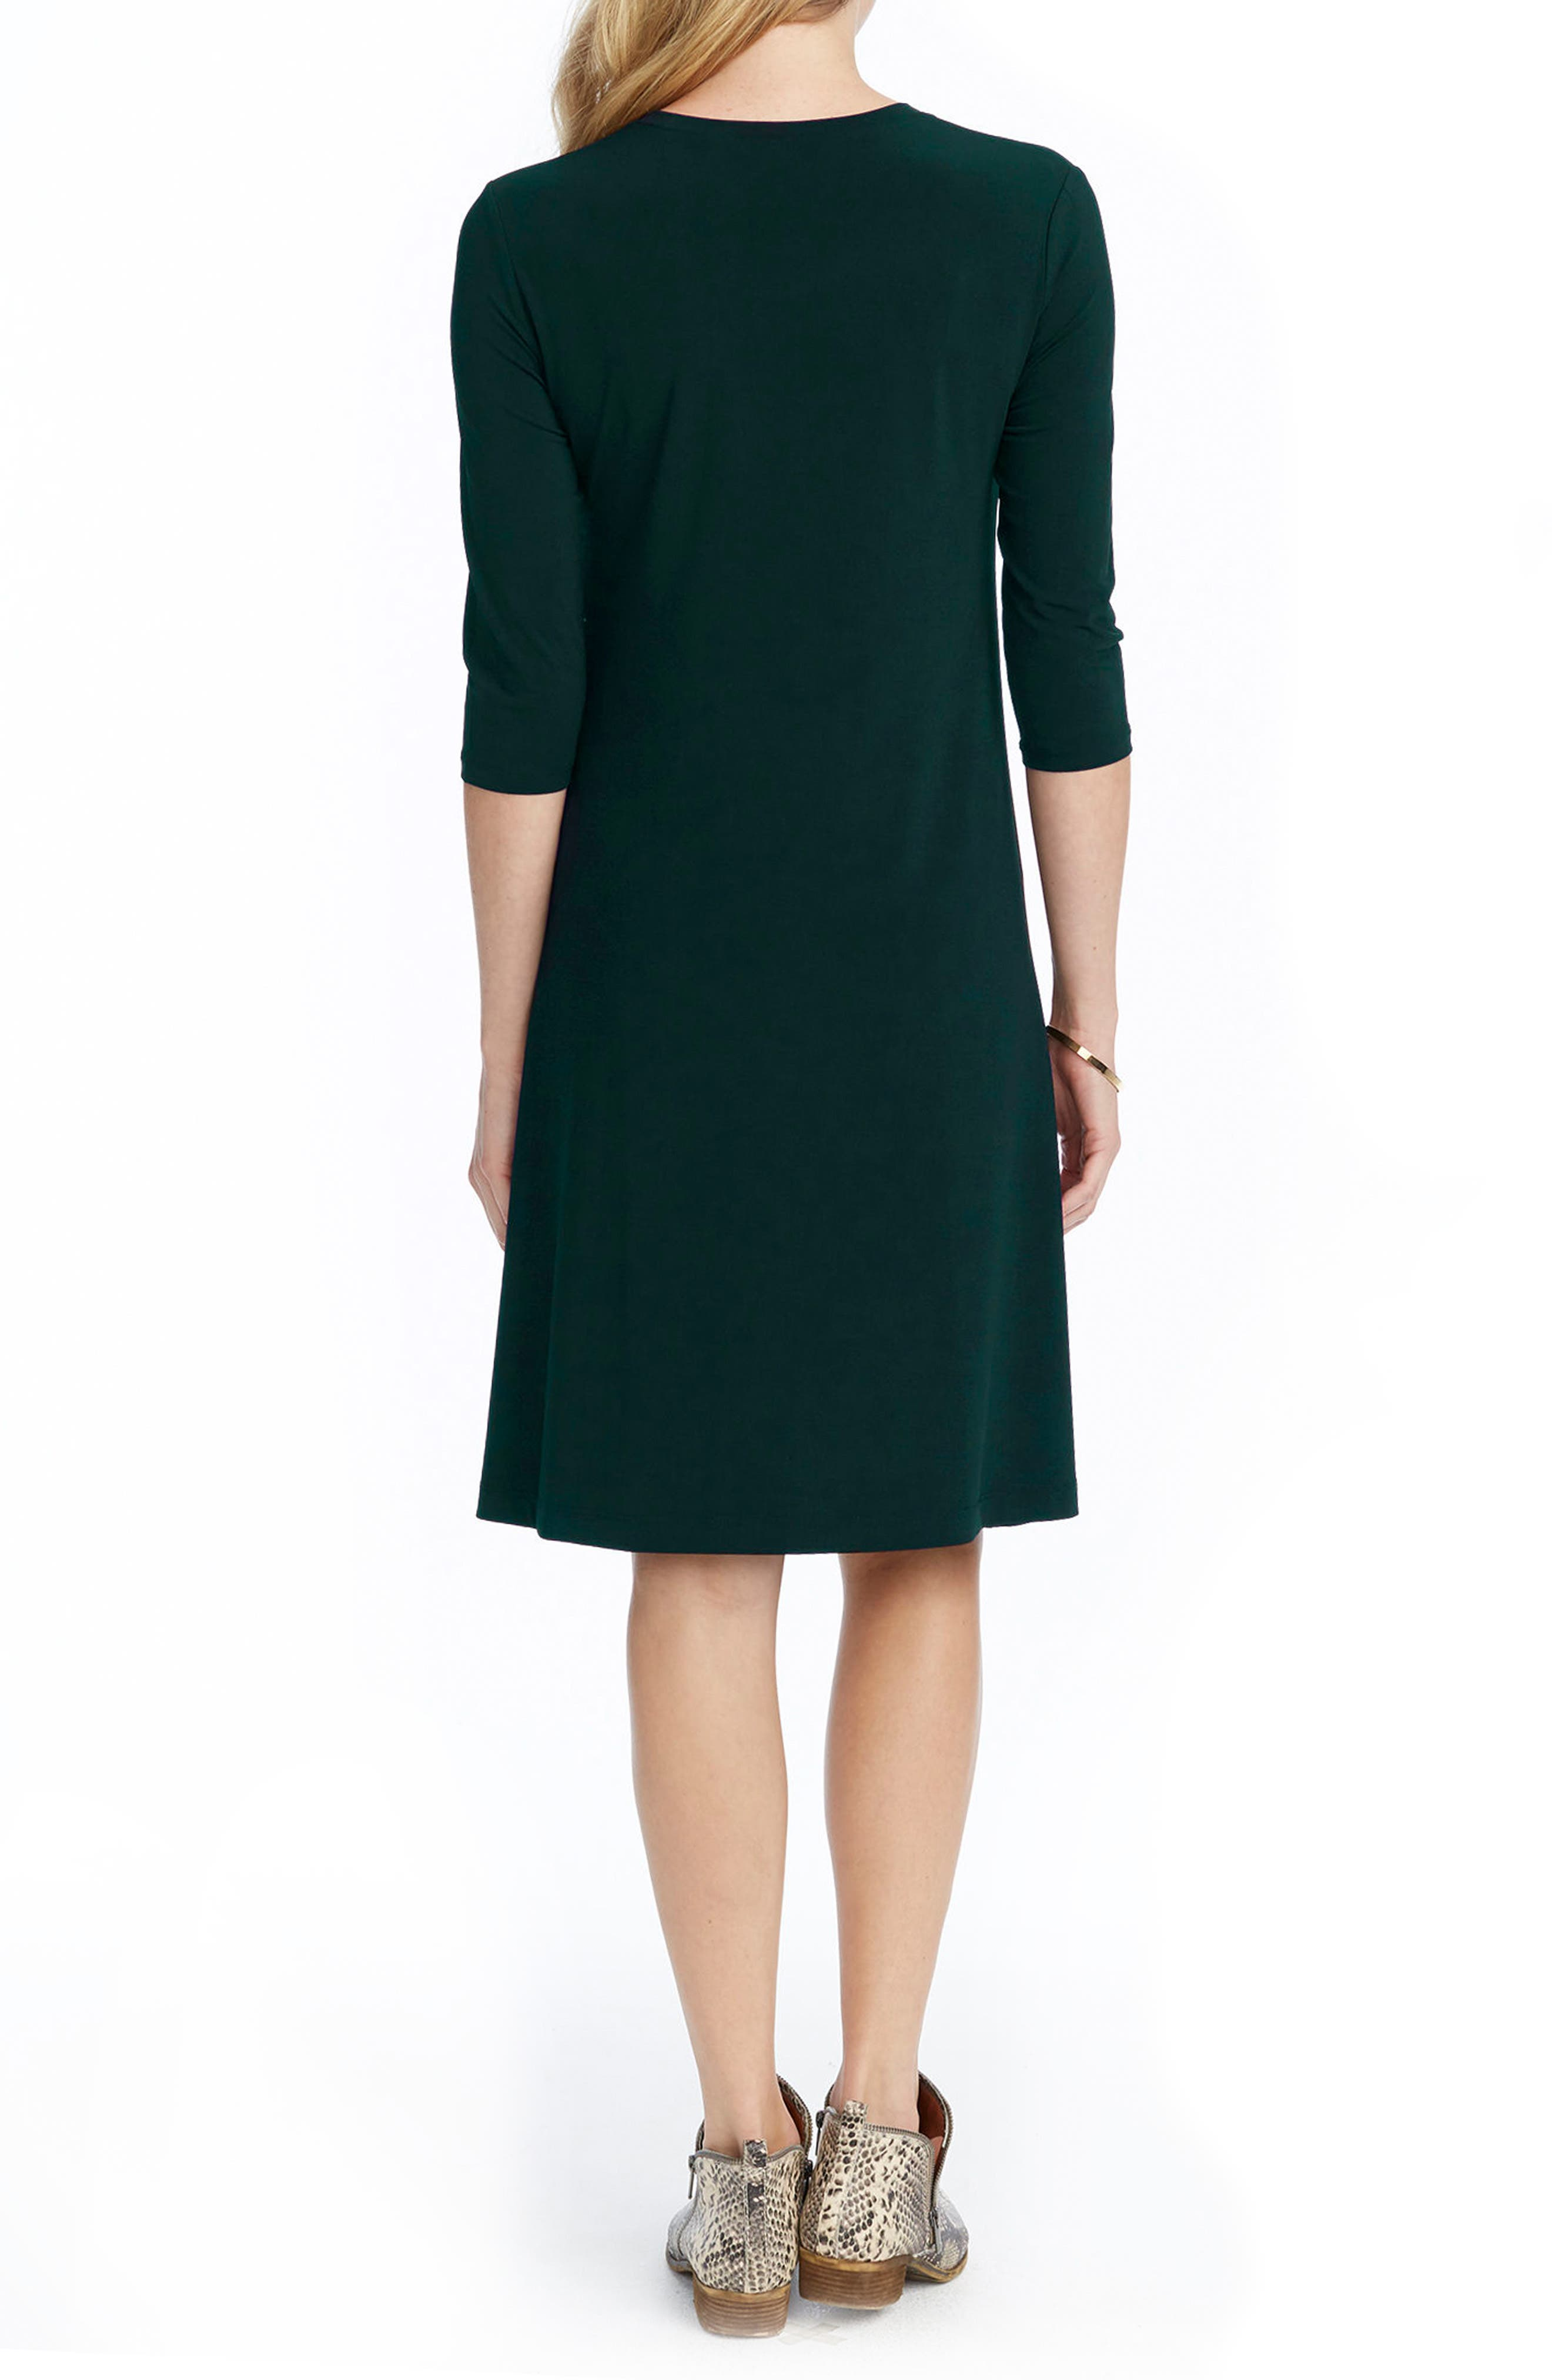 Tamra Maternity Swing Dress,                             Alternate thumbnail 2, color,                             Emerald